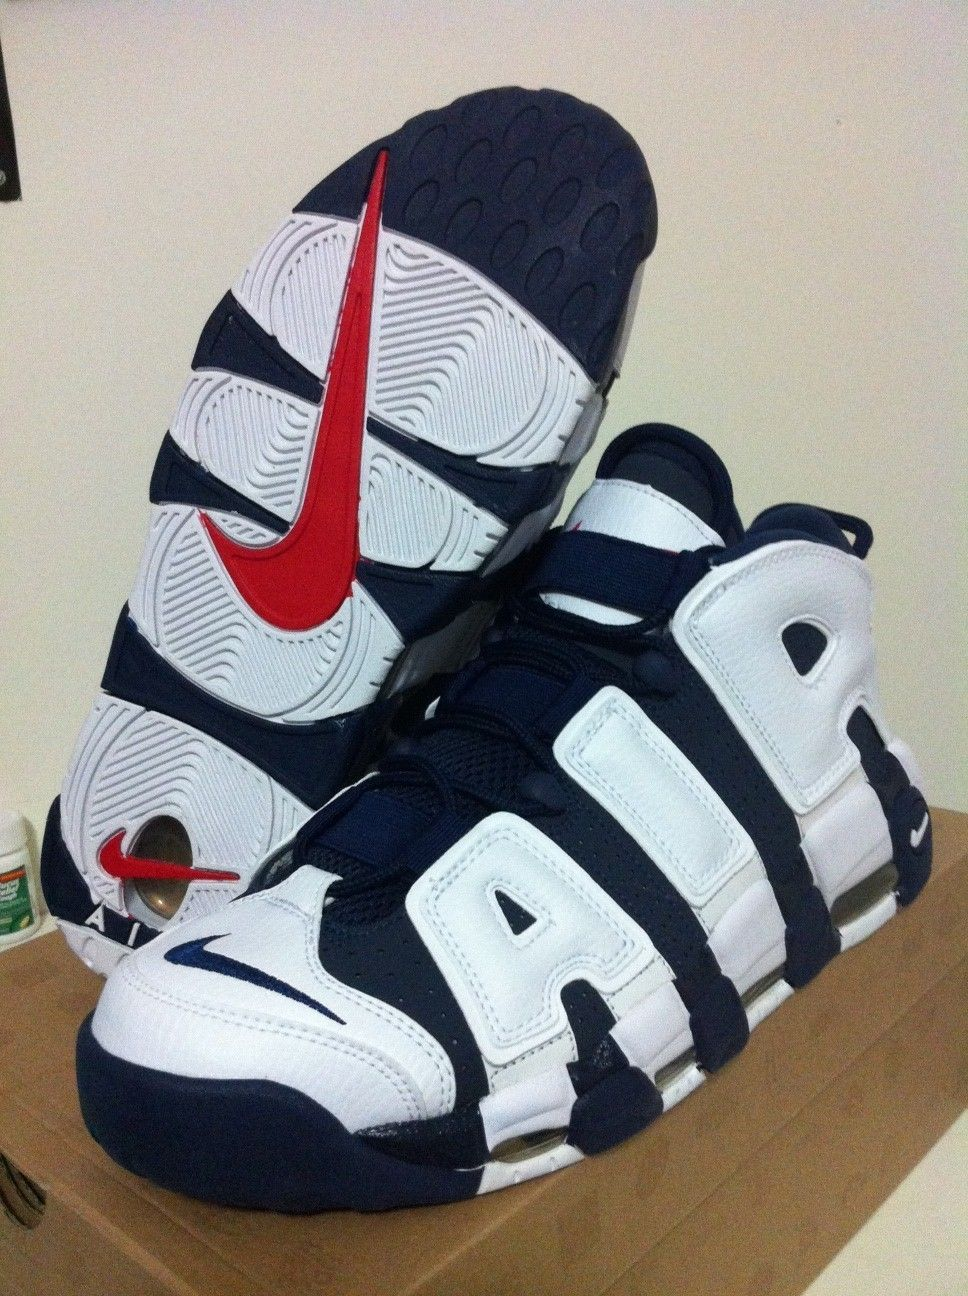 0b1cdc4f4df327 DS Nike Air More Uptempo Olympic Pippen Retro 8.5 Max Team USA Foamposite  KD  SNEAKERS